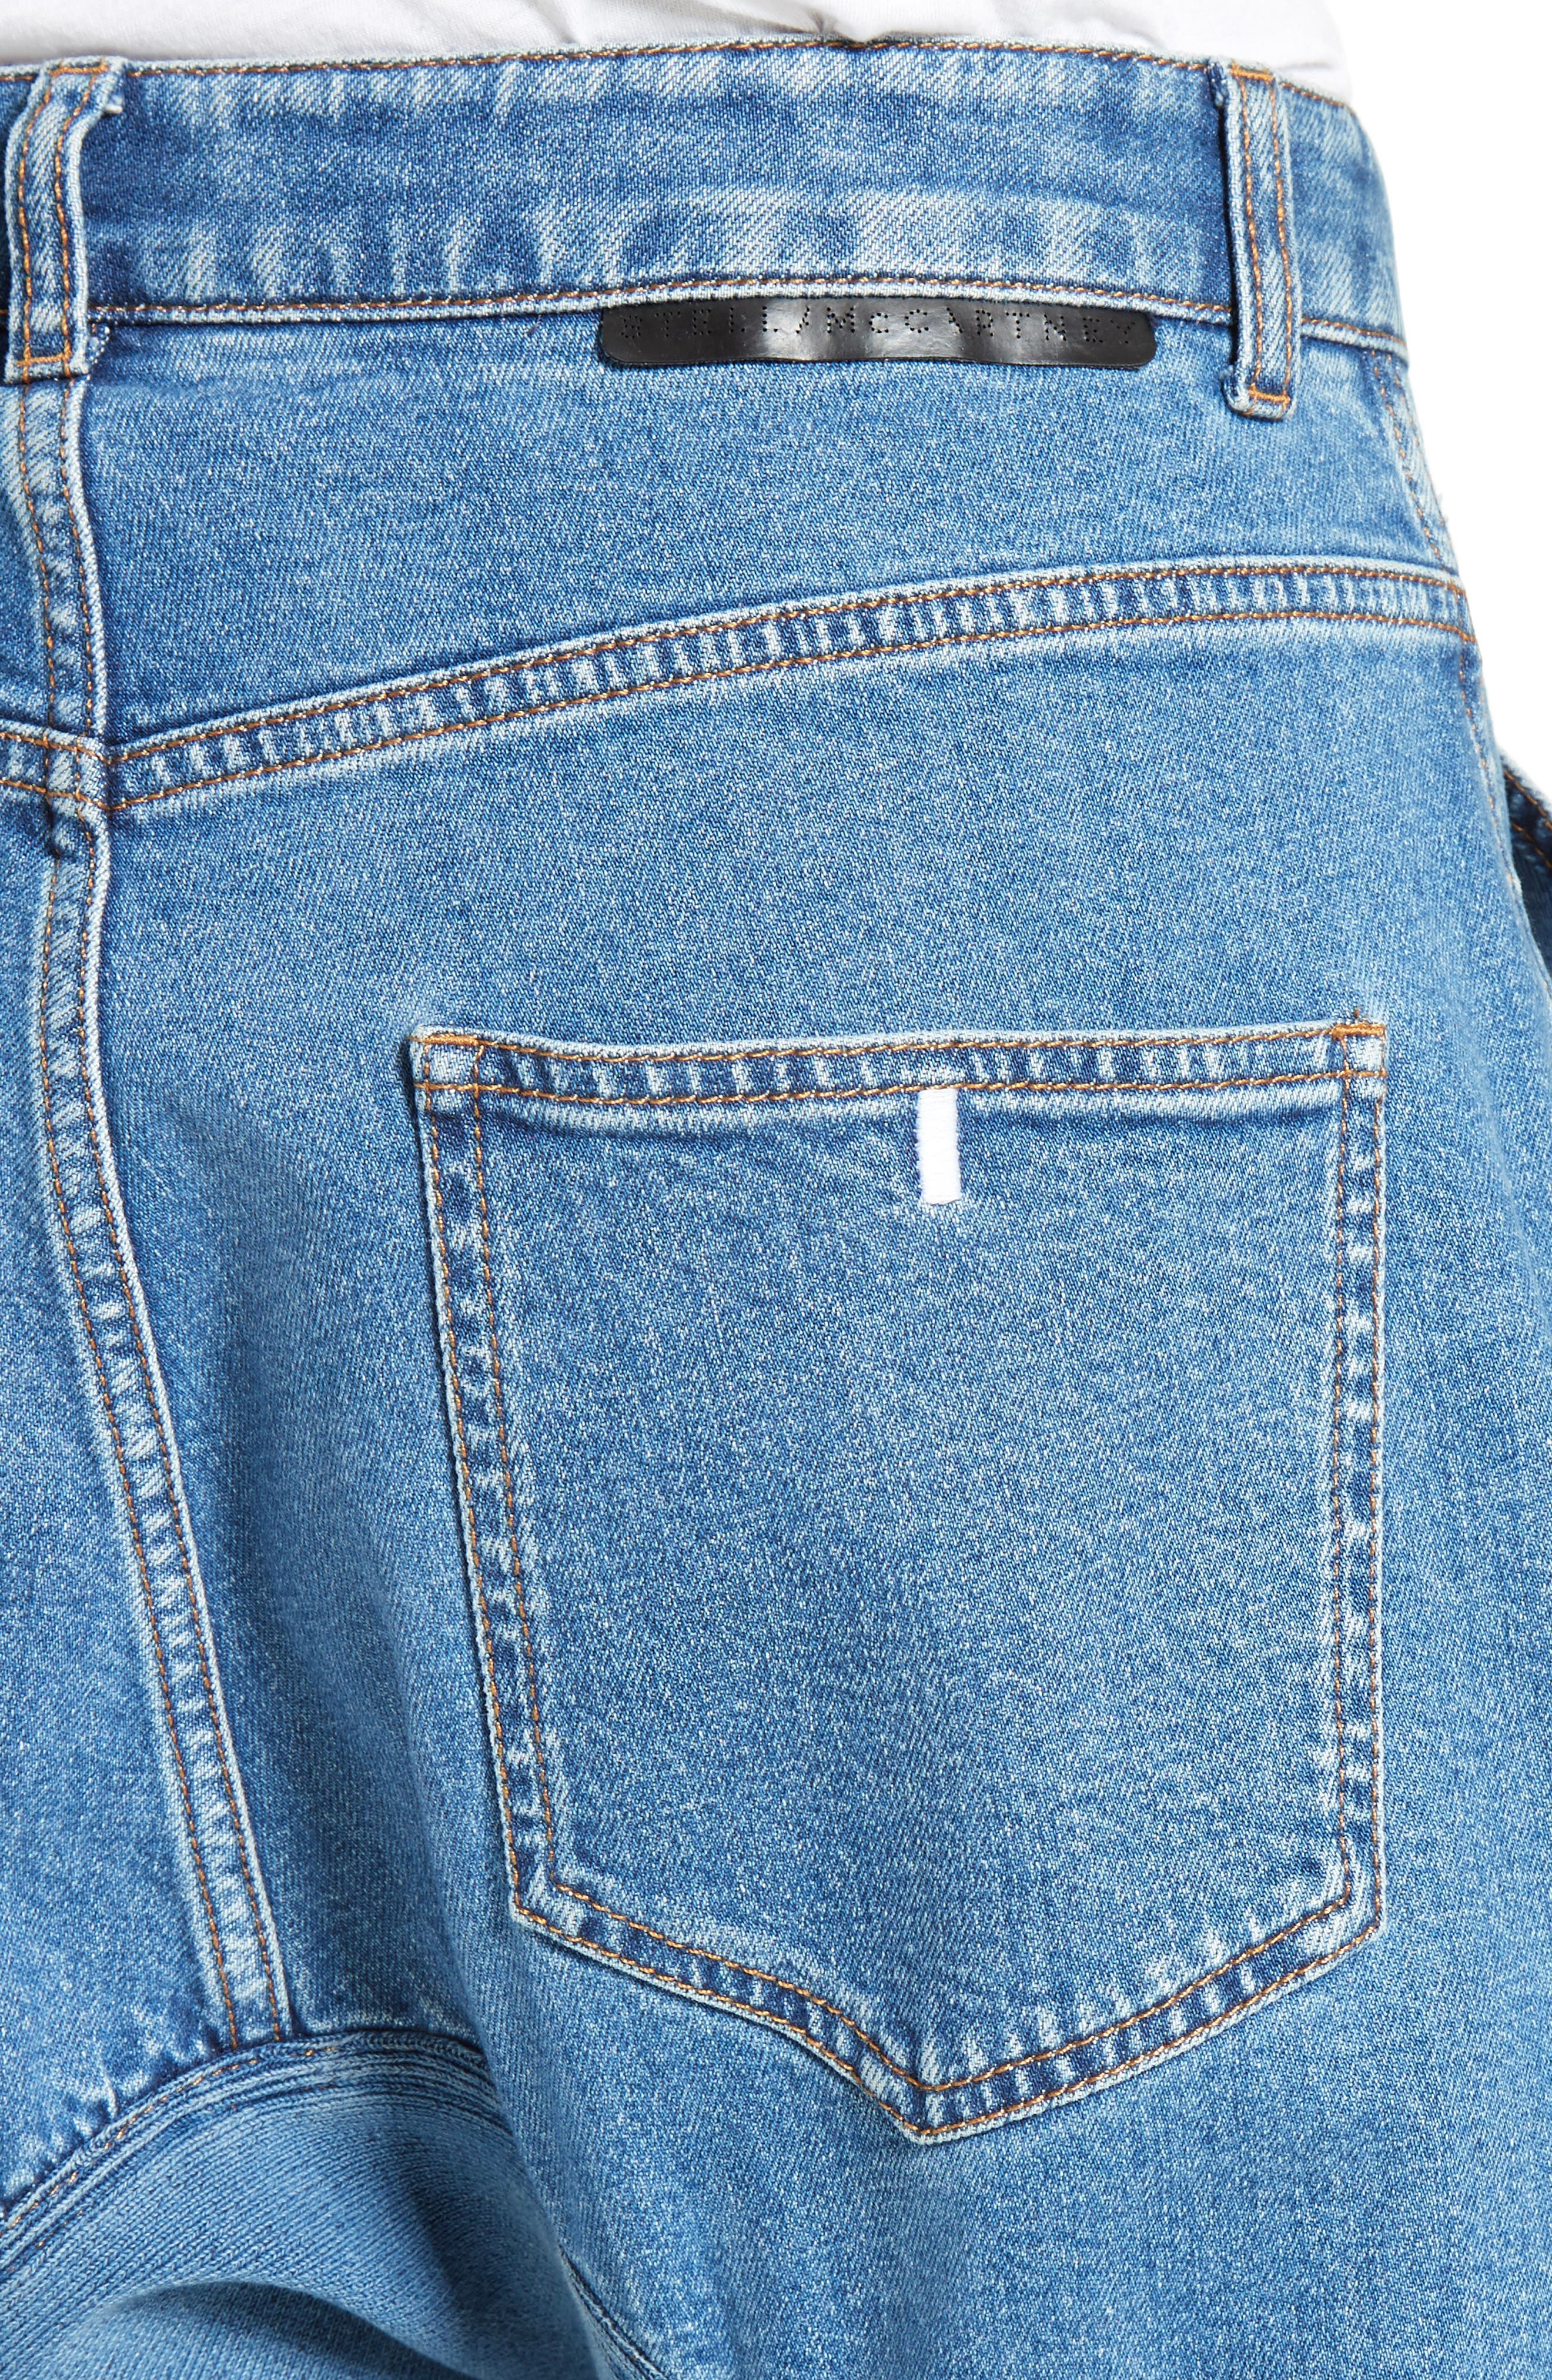 Xenia Ruched Crop Jeans,                             Alternate thumbnail 4, color,                             400